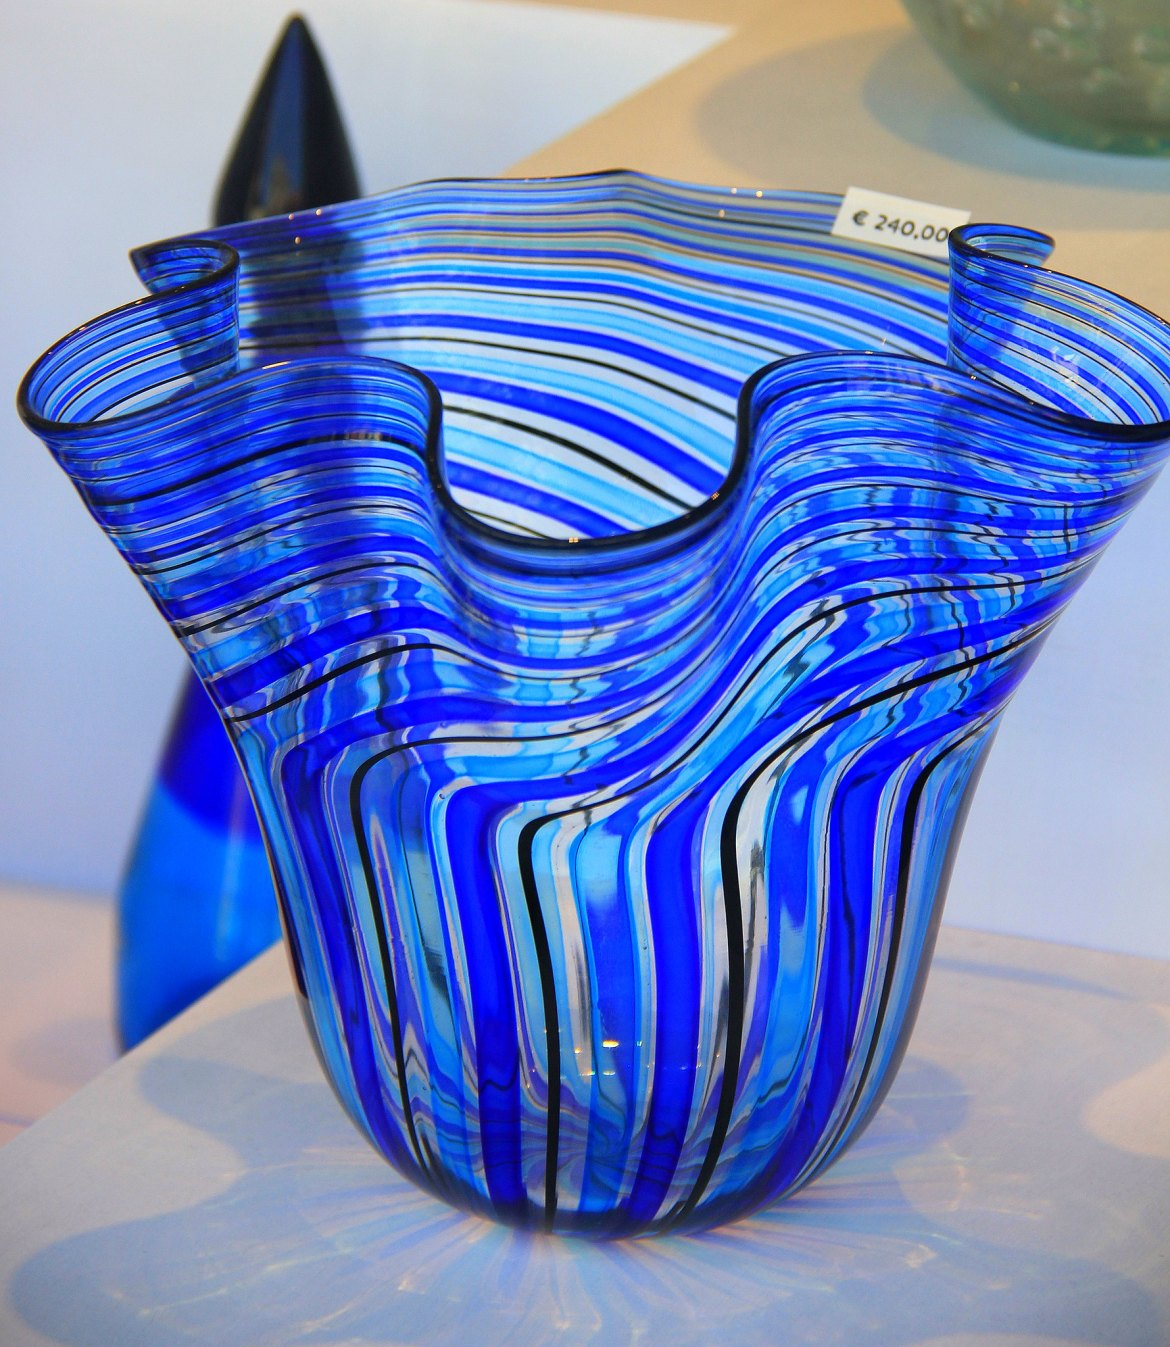 Murano glassware is one of the souvenirs to pickup on your Venice trip